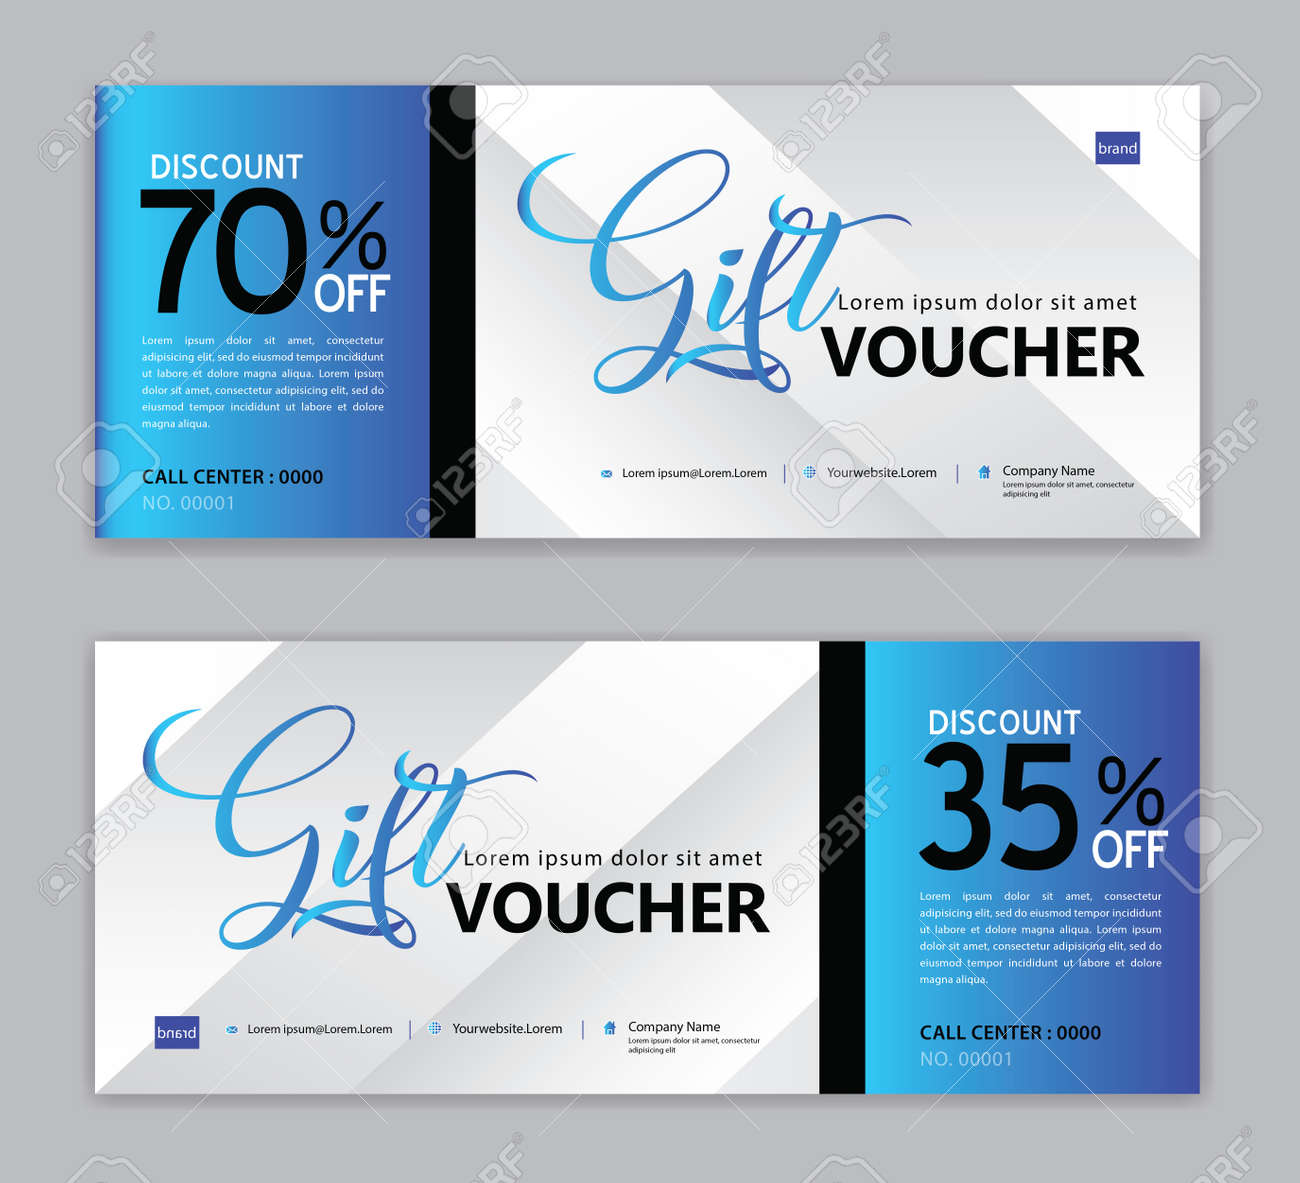 Gift Voucher template, Sale banner, Horizontal layout, discount cards, headers, website, blue background. - 120691911